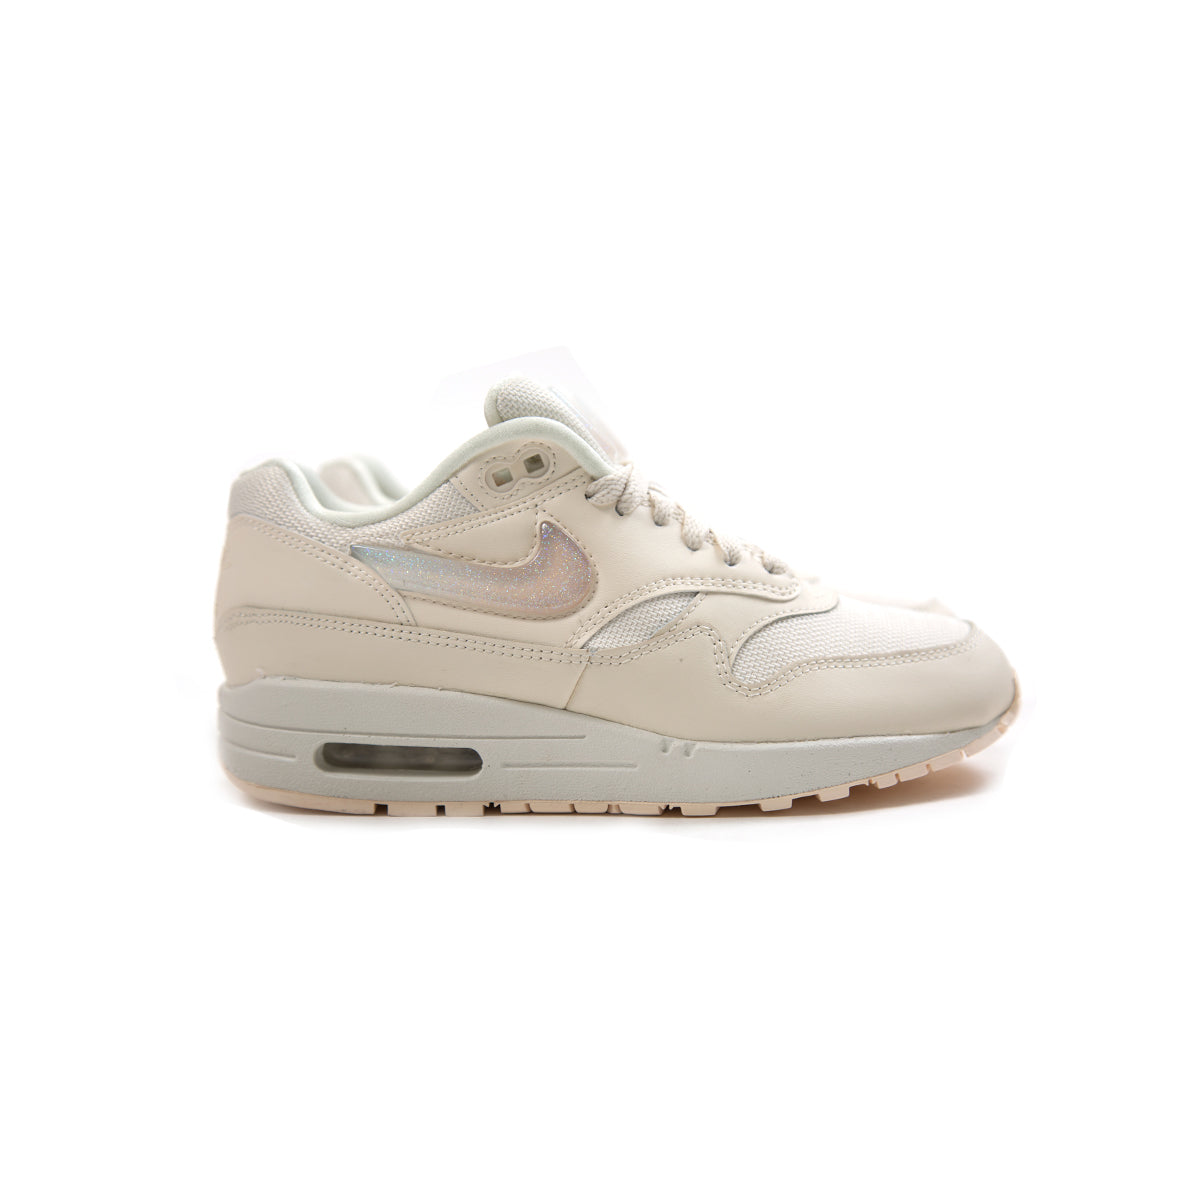 Nike Air Max 1 'Jewel Swoosh' Ivory For Sale